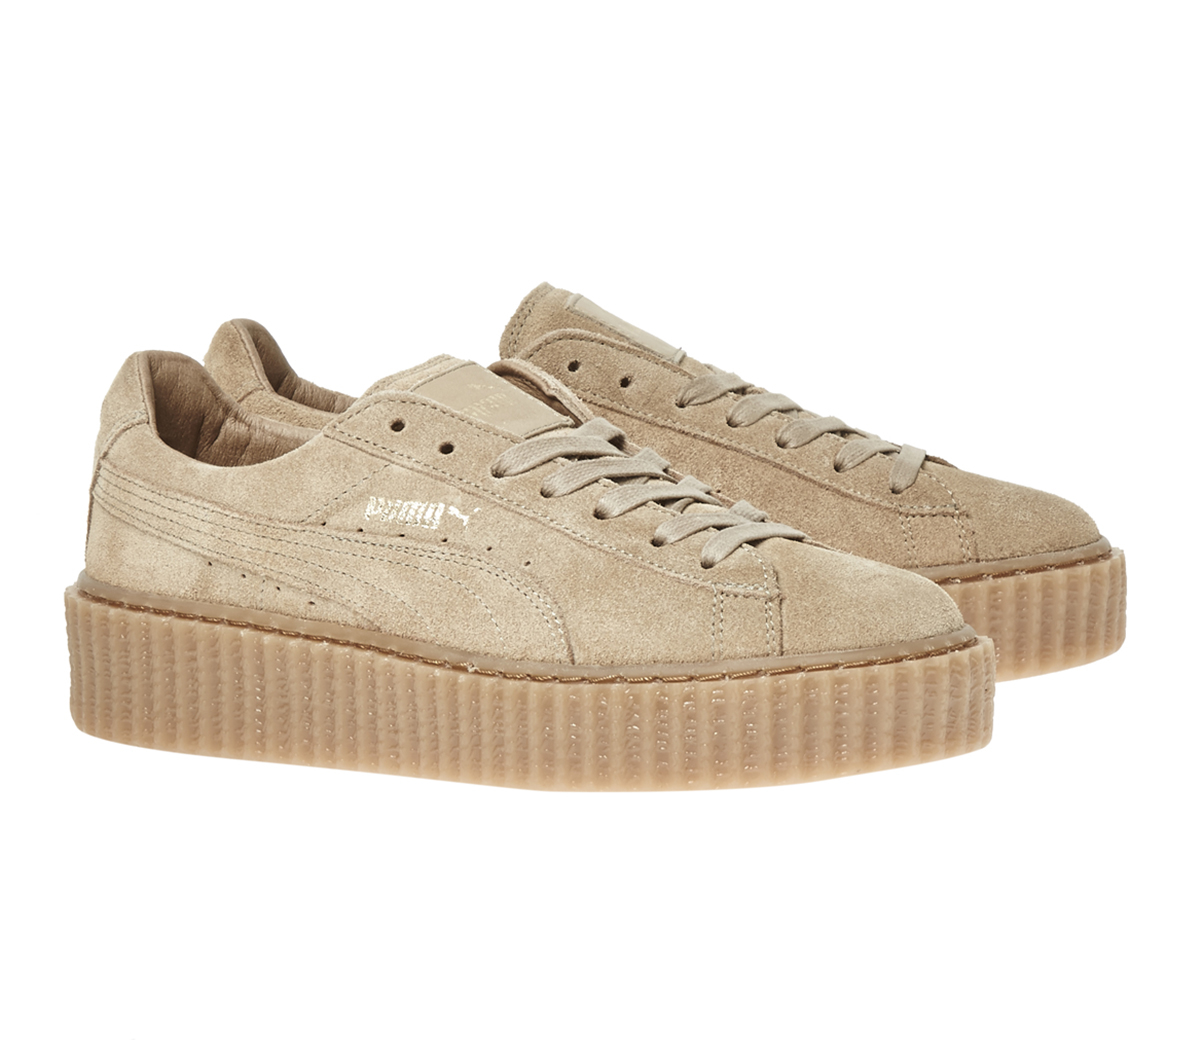 huge discount 35fdc 49c6a PUMA Metallic Suede Creepers